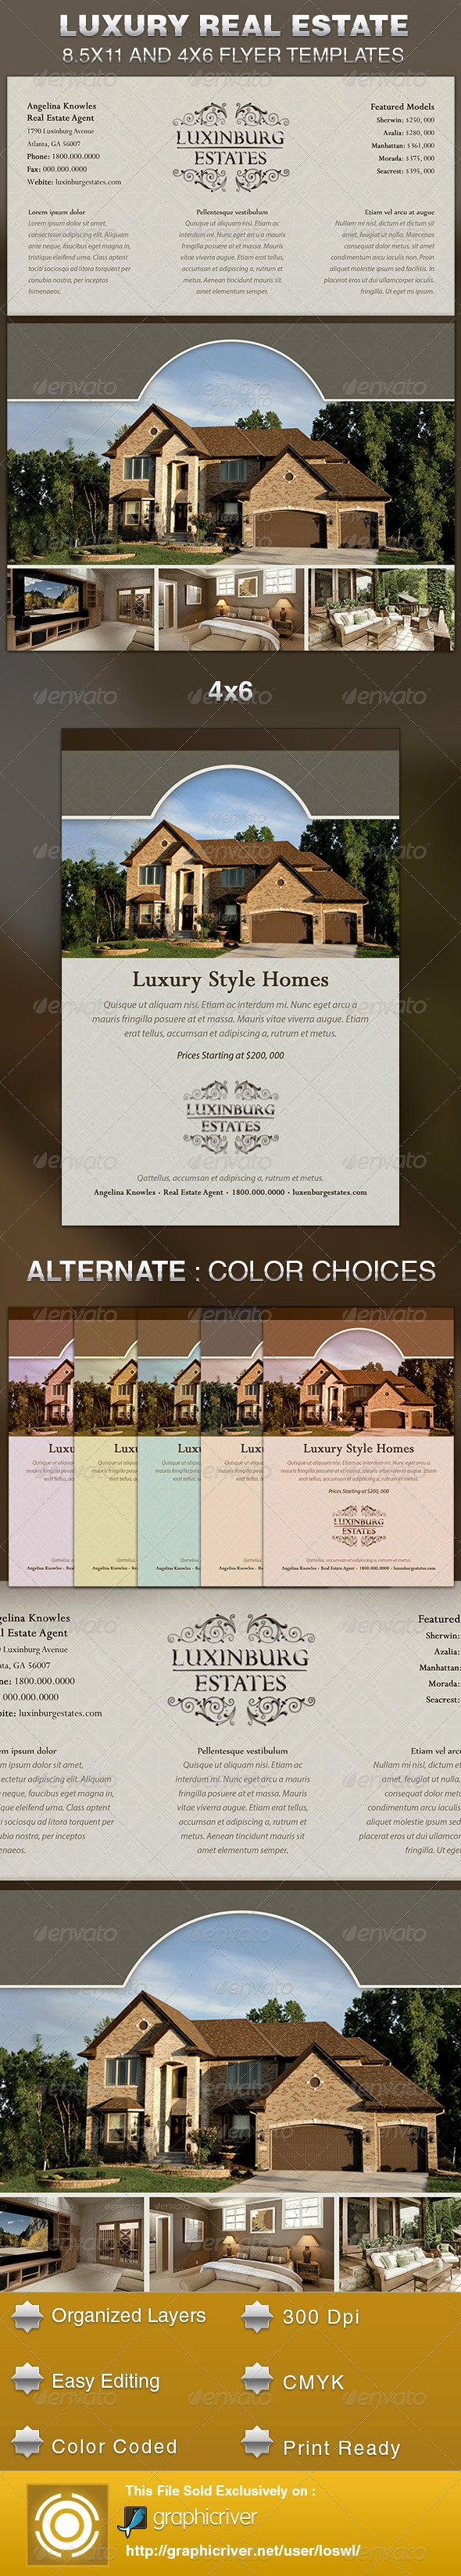 Luxury Real Estate Flyers Luxury Luxury Real Estate Flyer Template